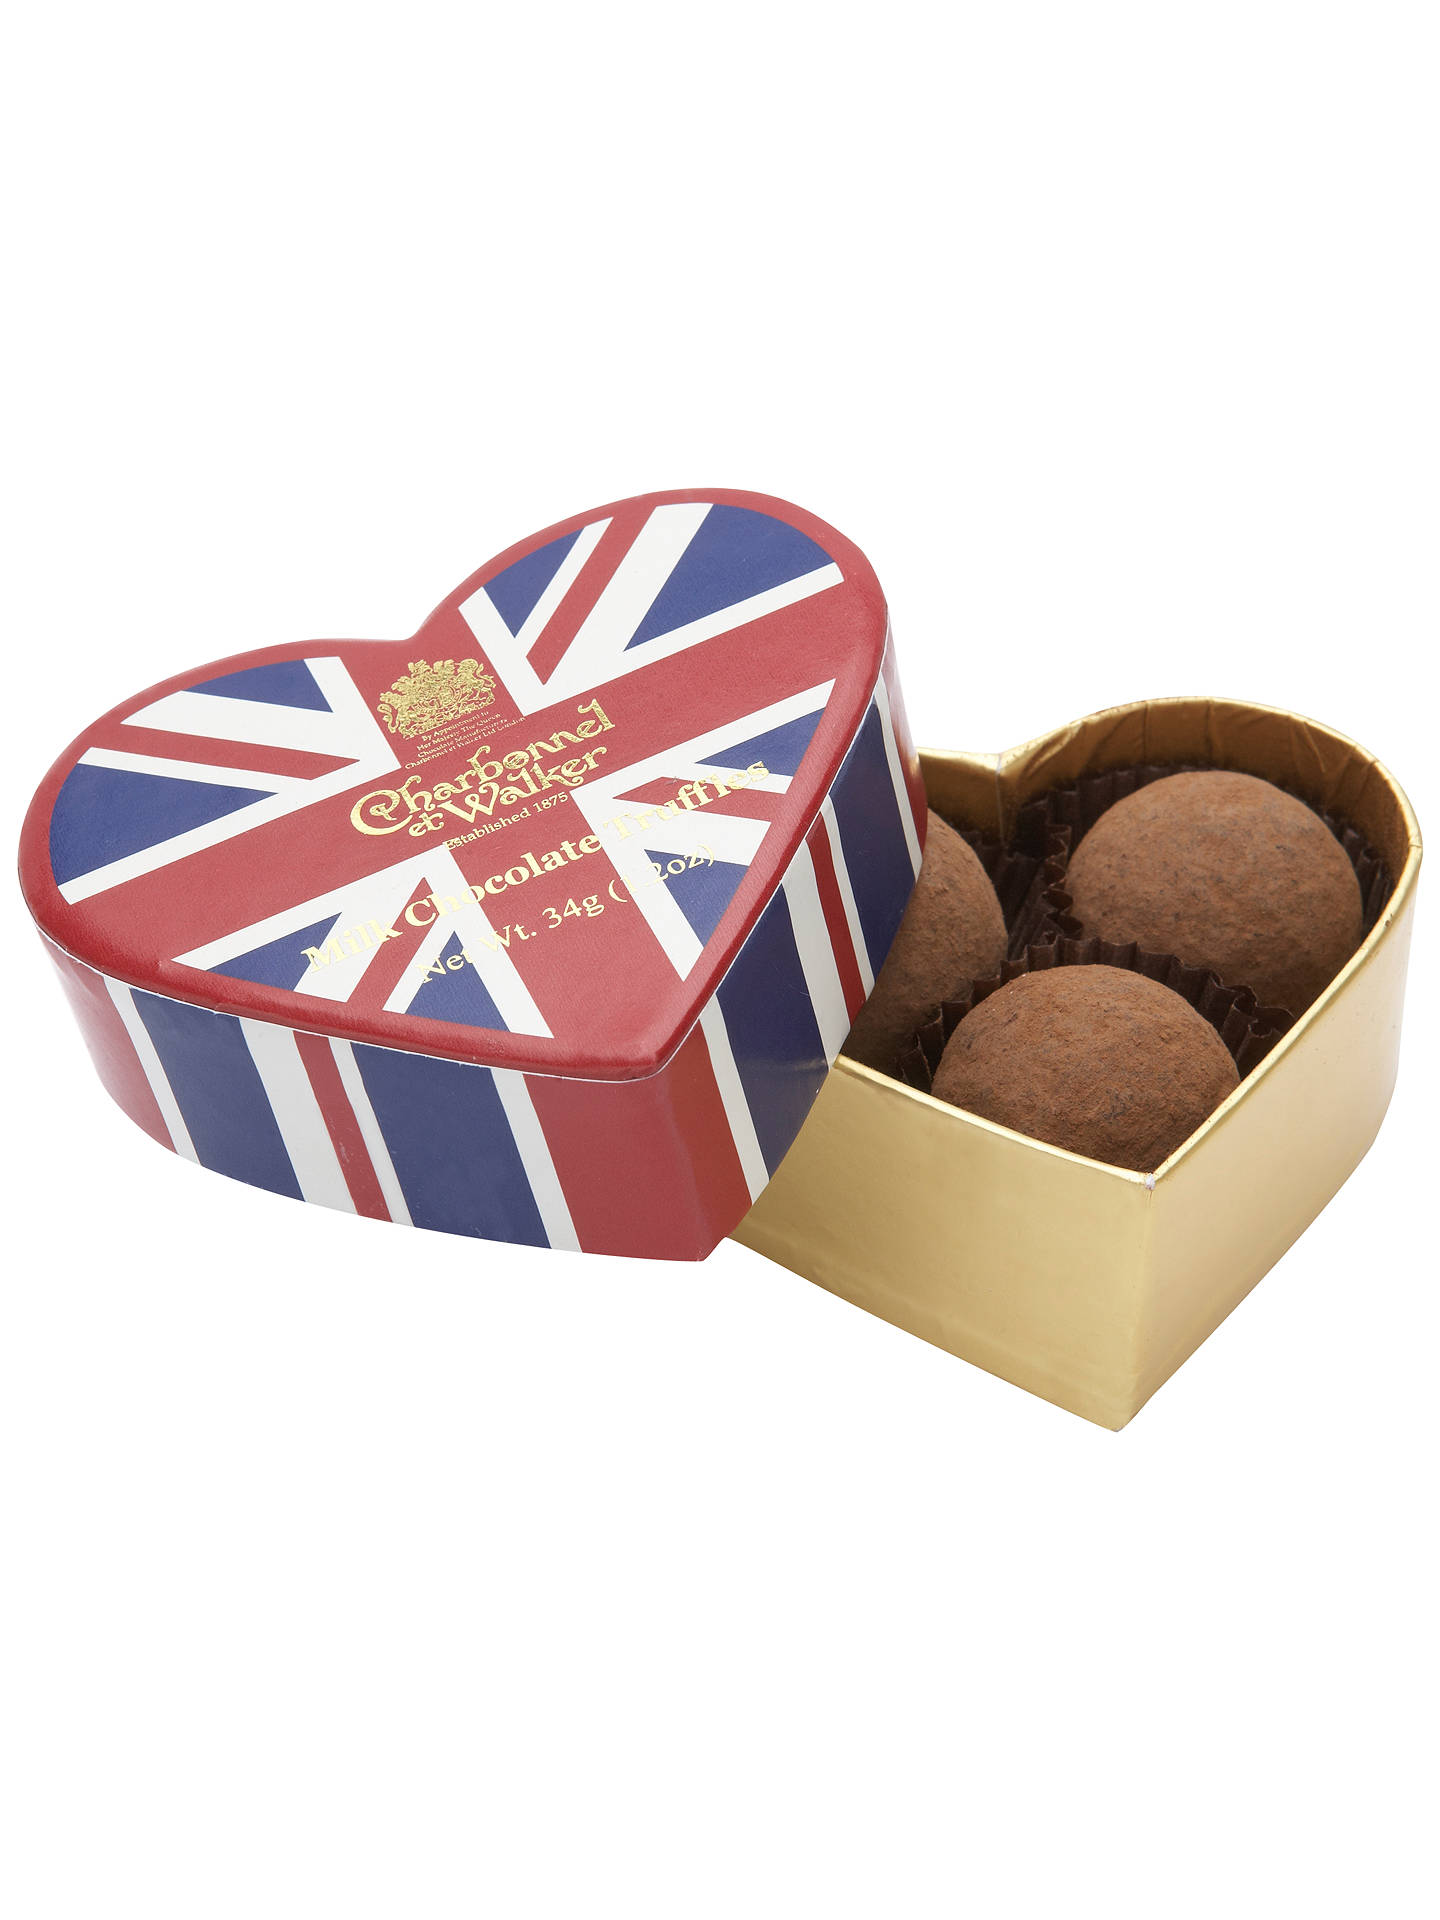 BuyCharbonnel et Walker Mini Truffles in a Union Jack Heart Box, 34g Online at johnlewis.com